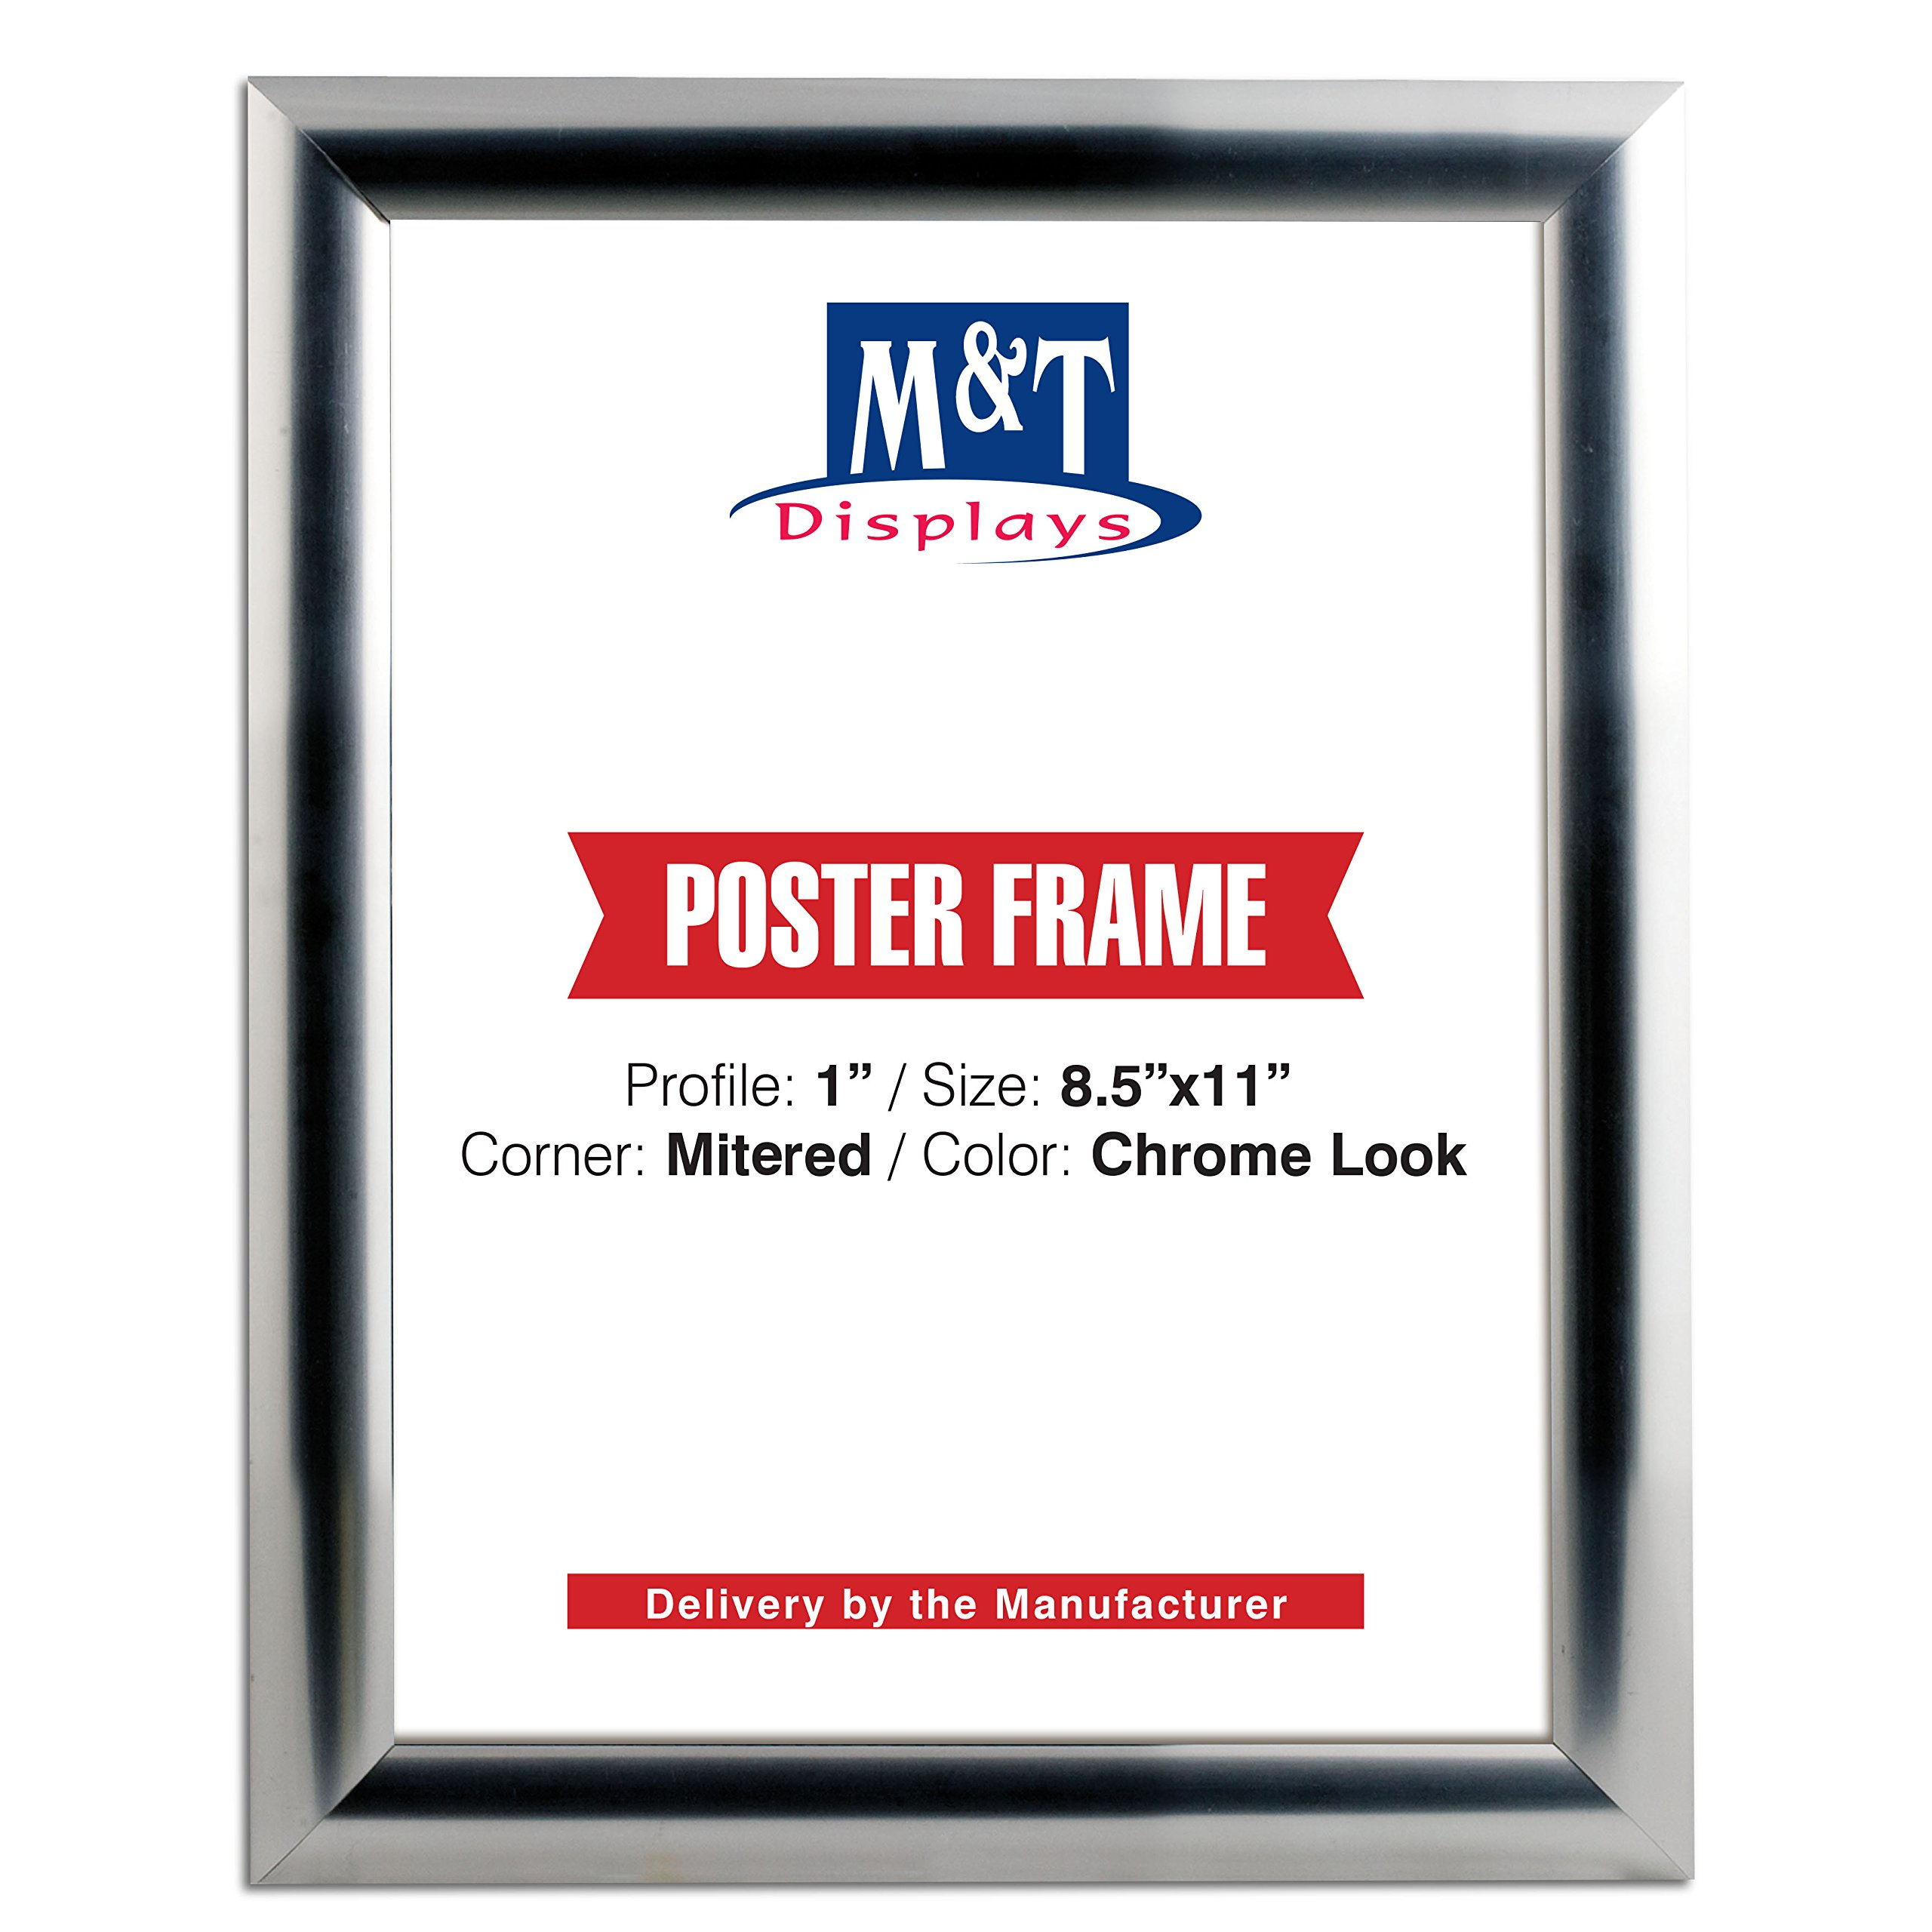 DisplaysMarket Snap Frame, 8.5x11 Poster Size, 1'' Chrome Look Profile, Mitered Corner, Front Loading by DisplaysMarket